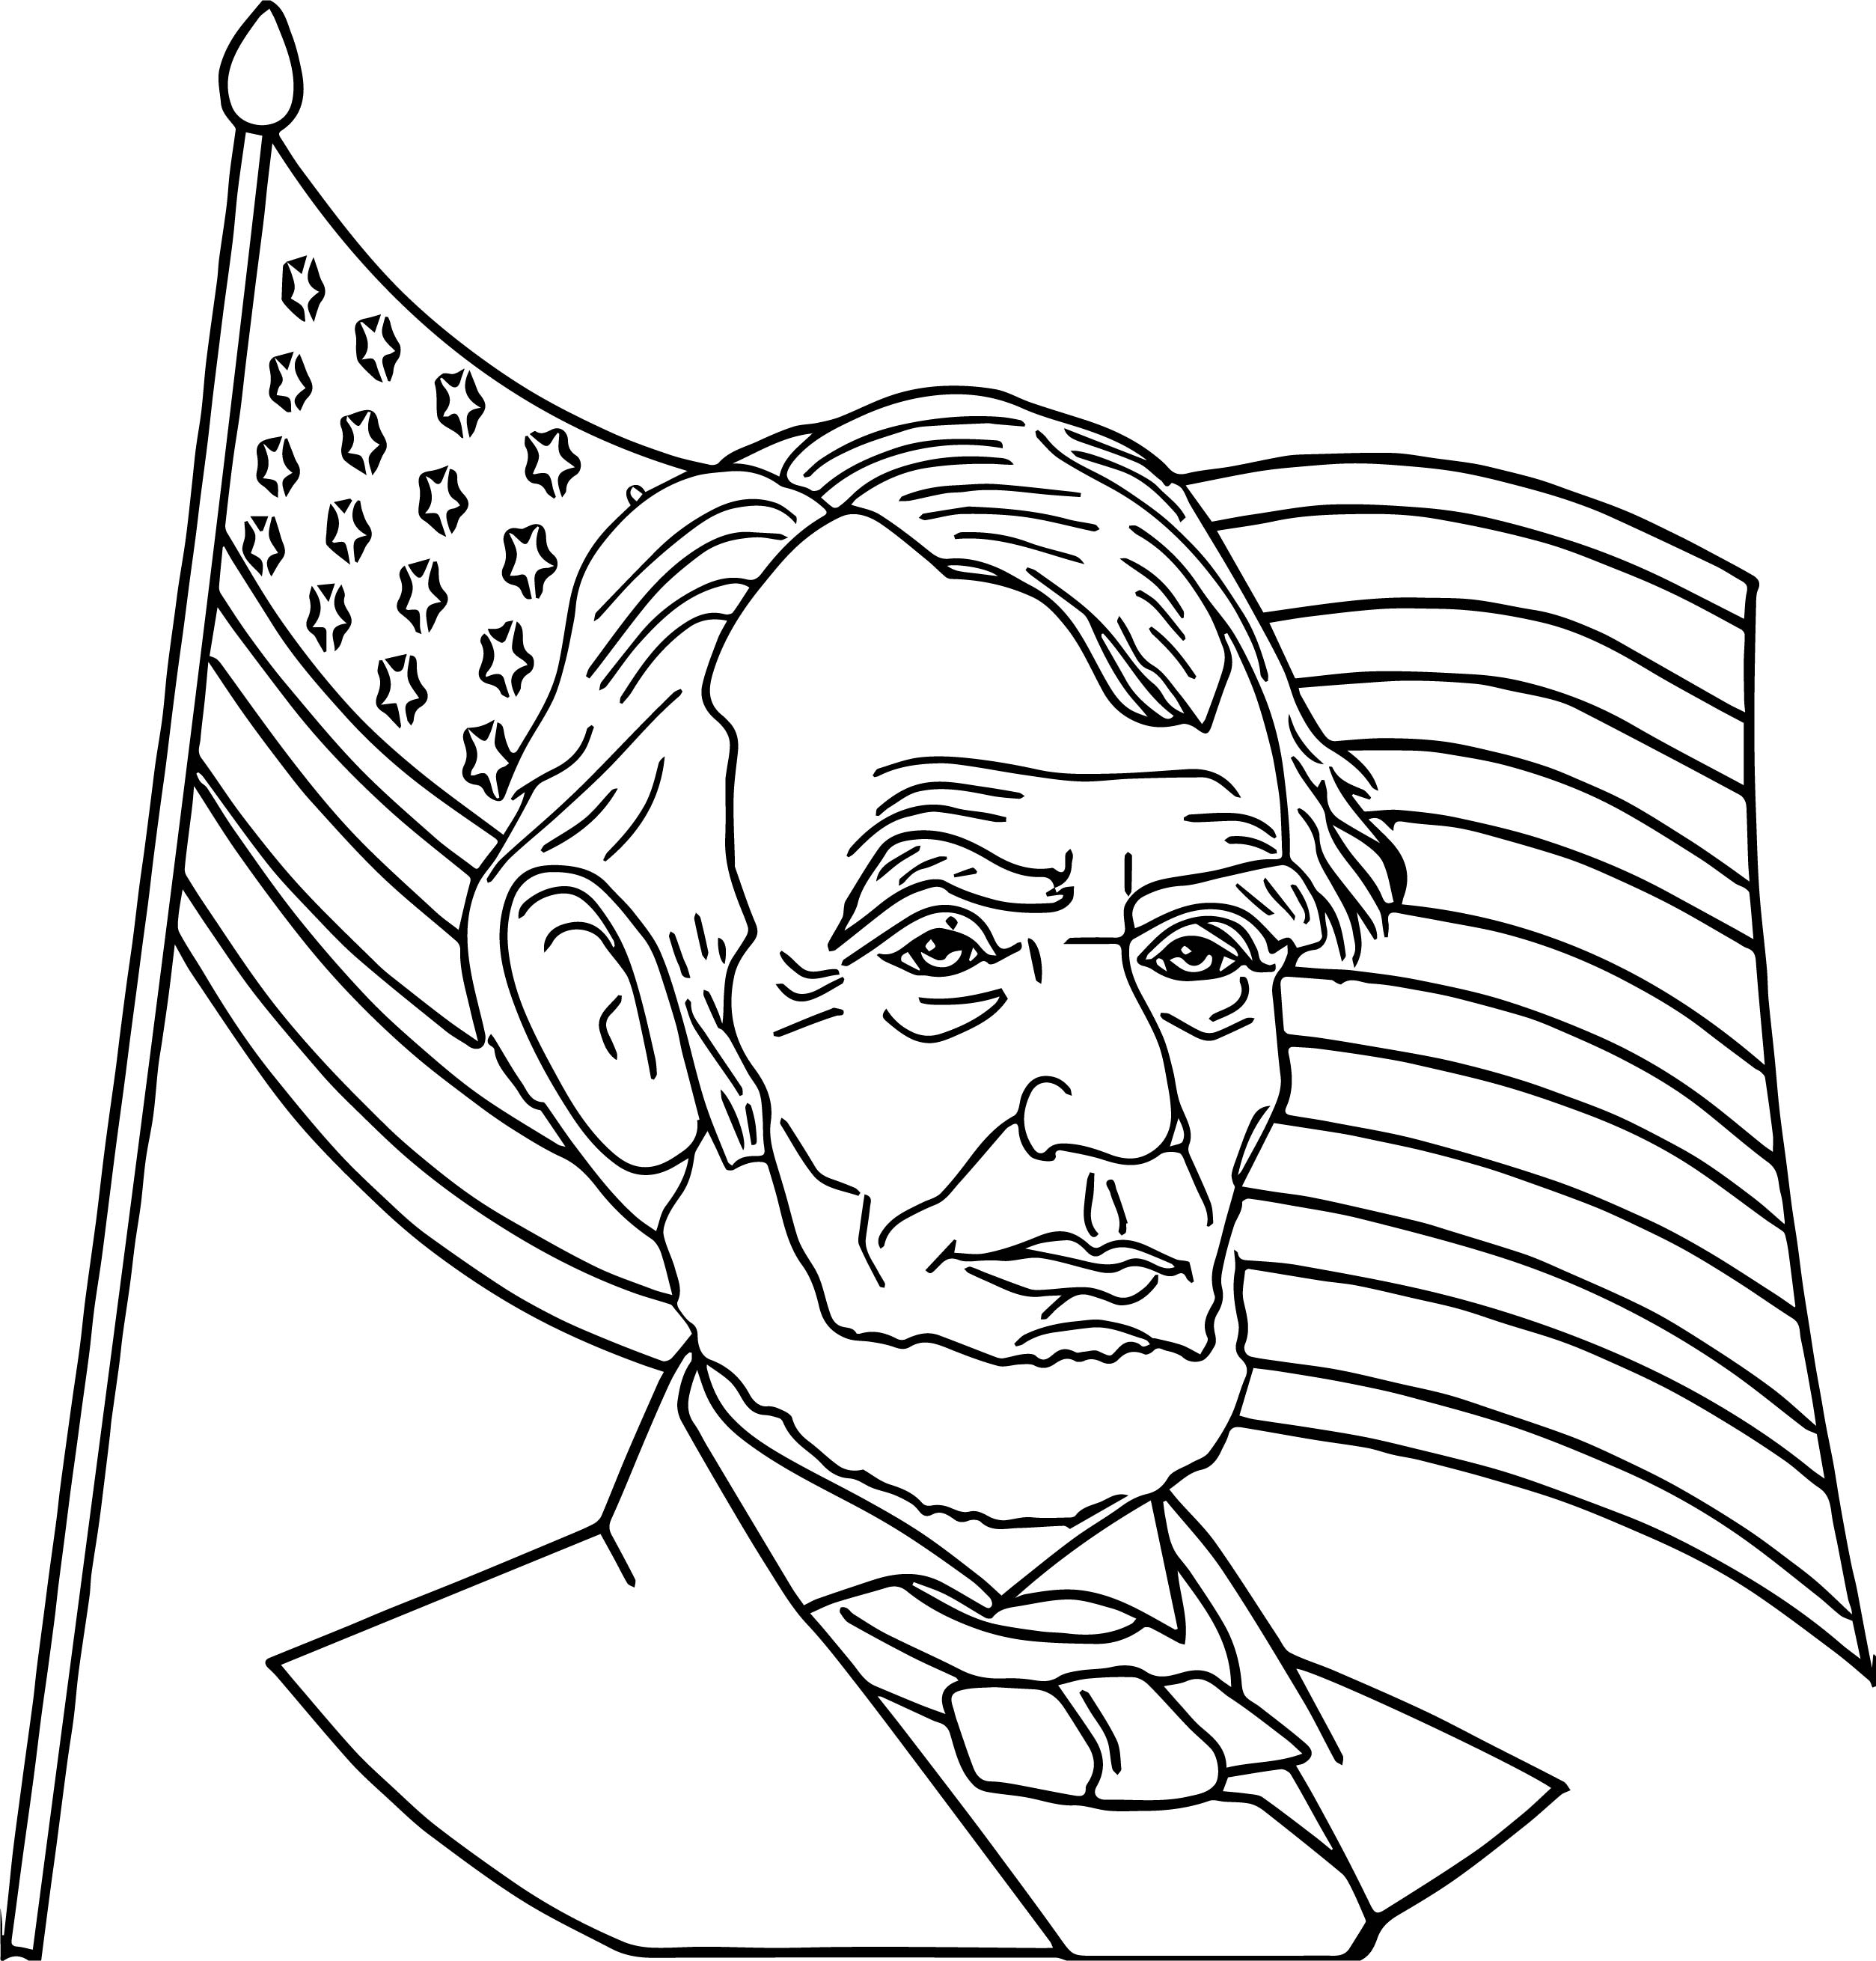 abraham lincoln coloring pages abraham lincoln coloring page purple kitty lincoln abraham coloring pages